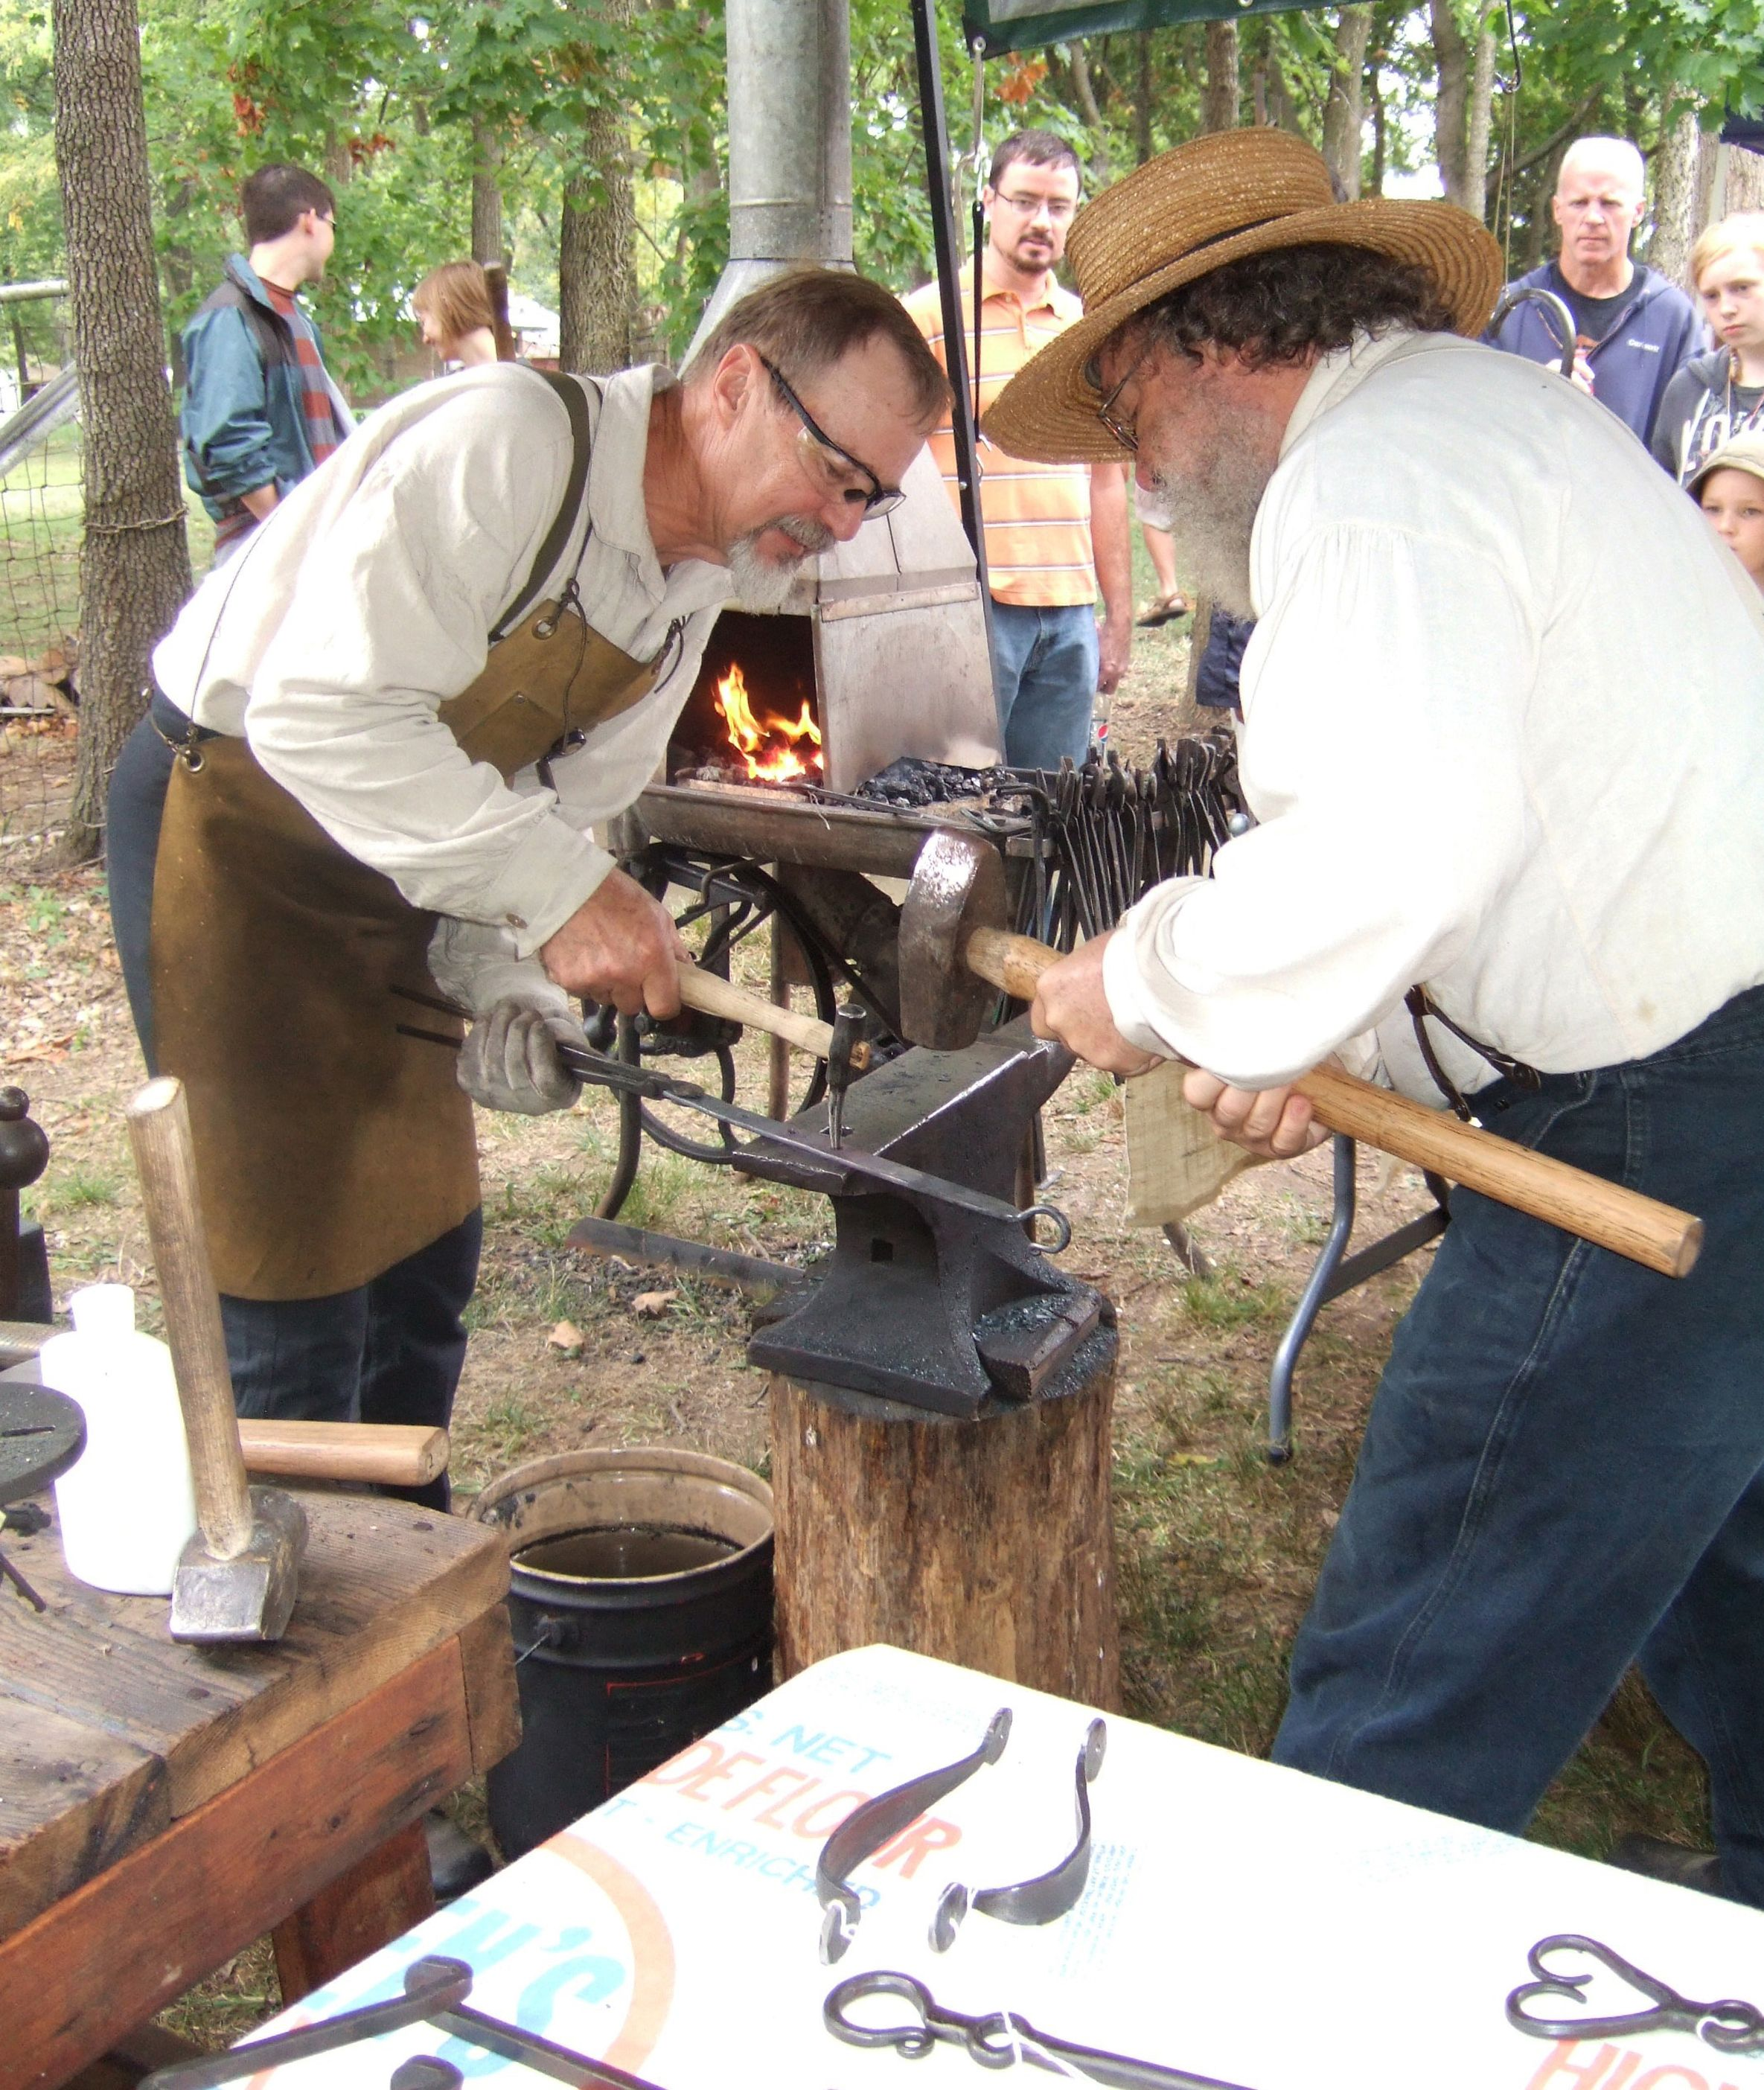 The Annual Heritage Festival And Craft Show In Columbia Celebrates